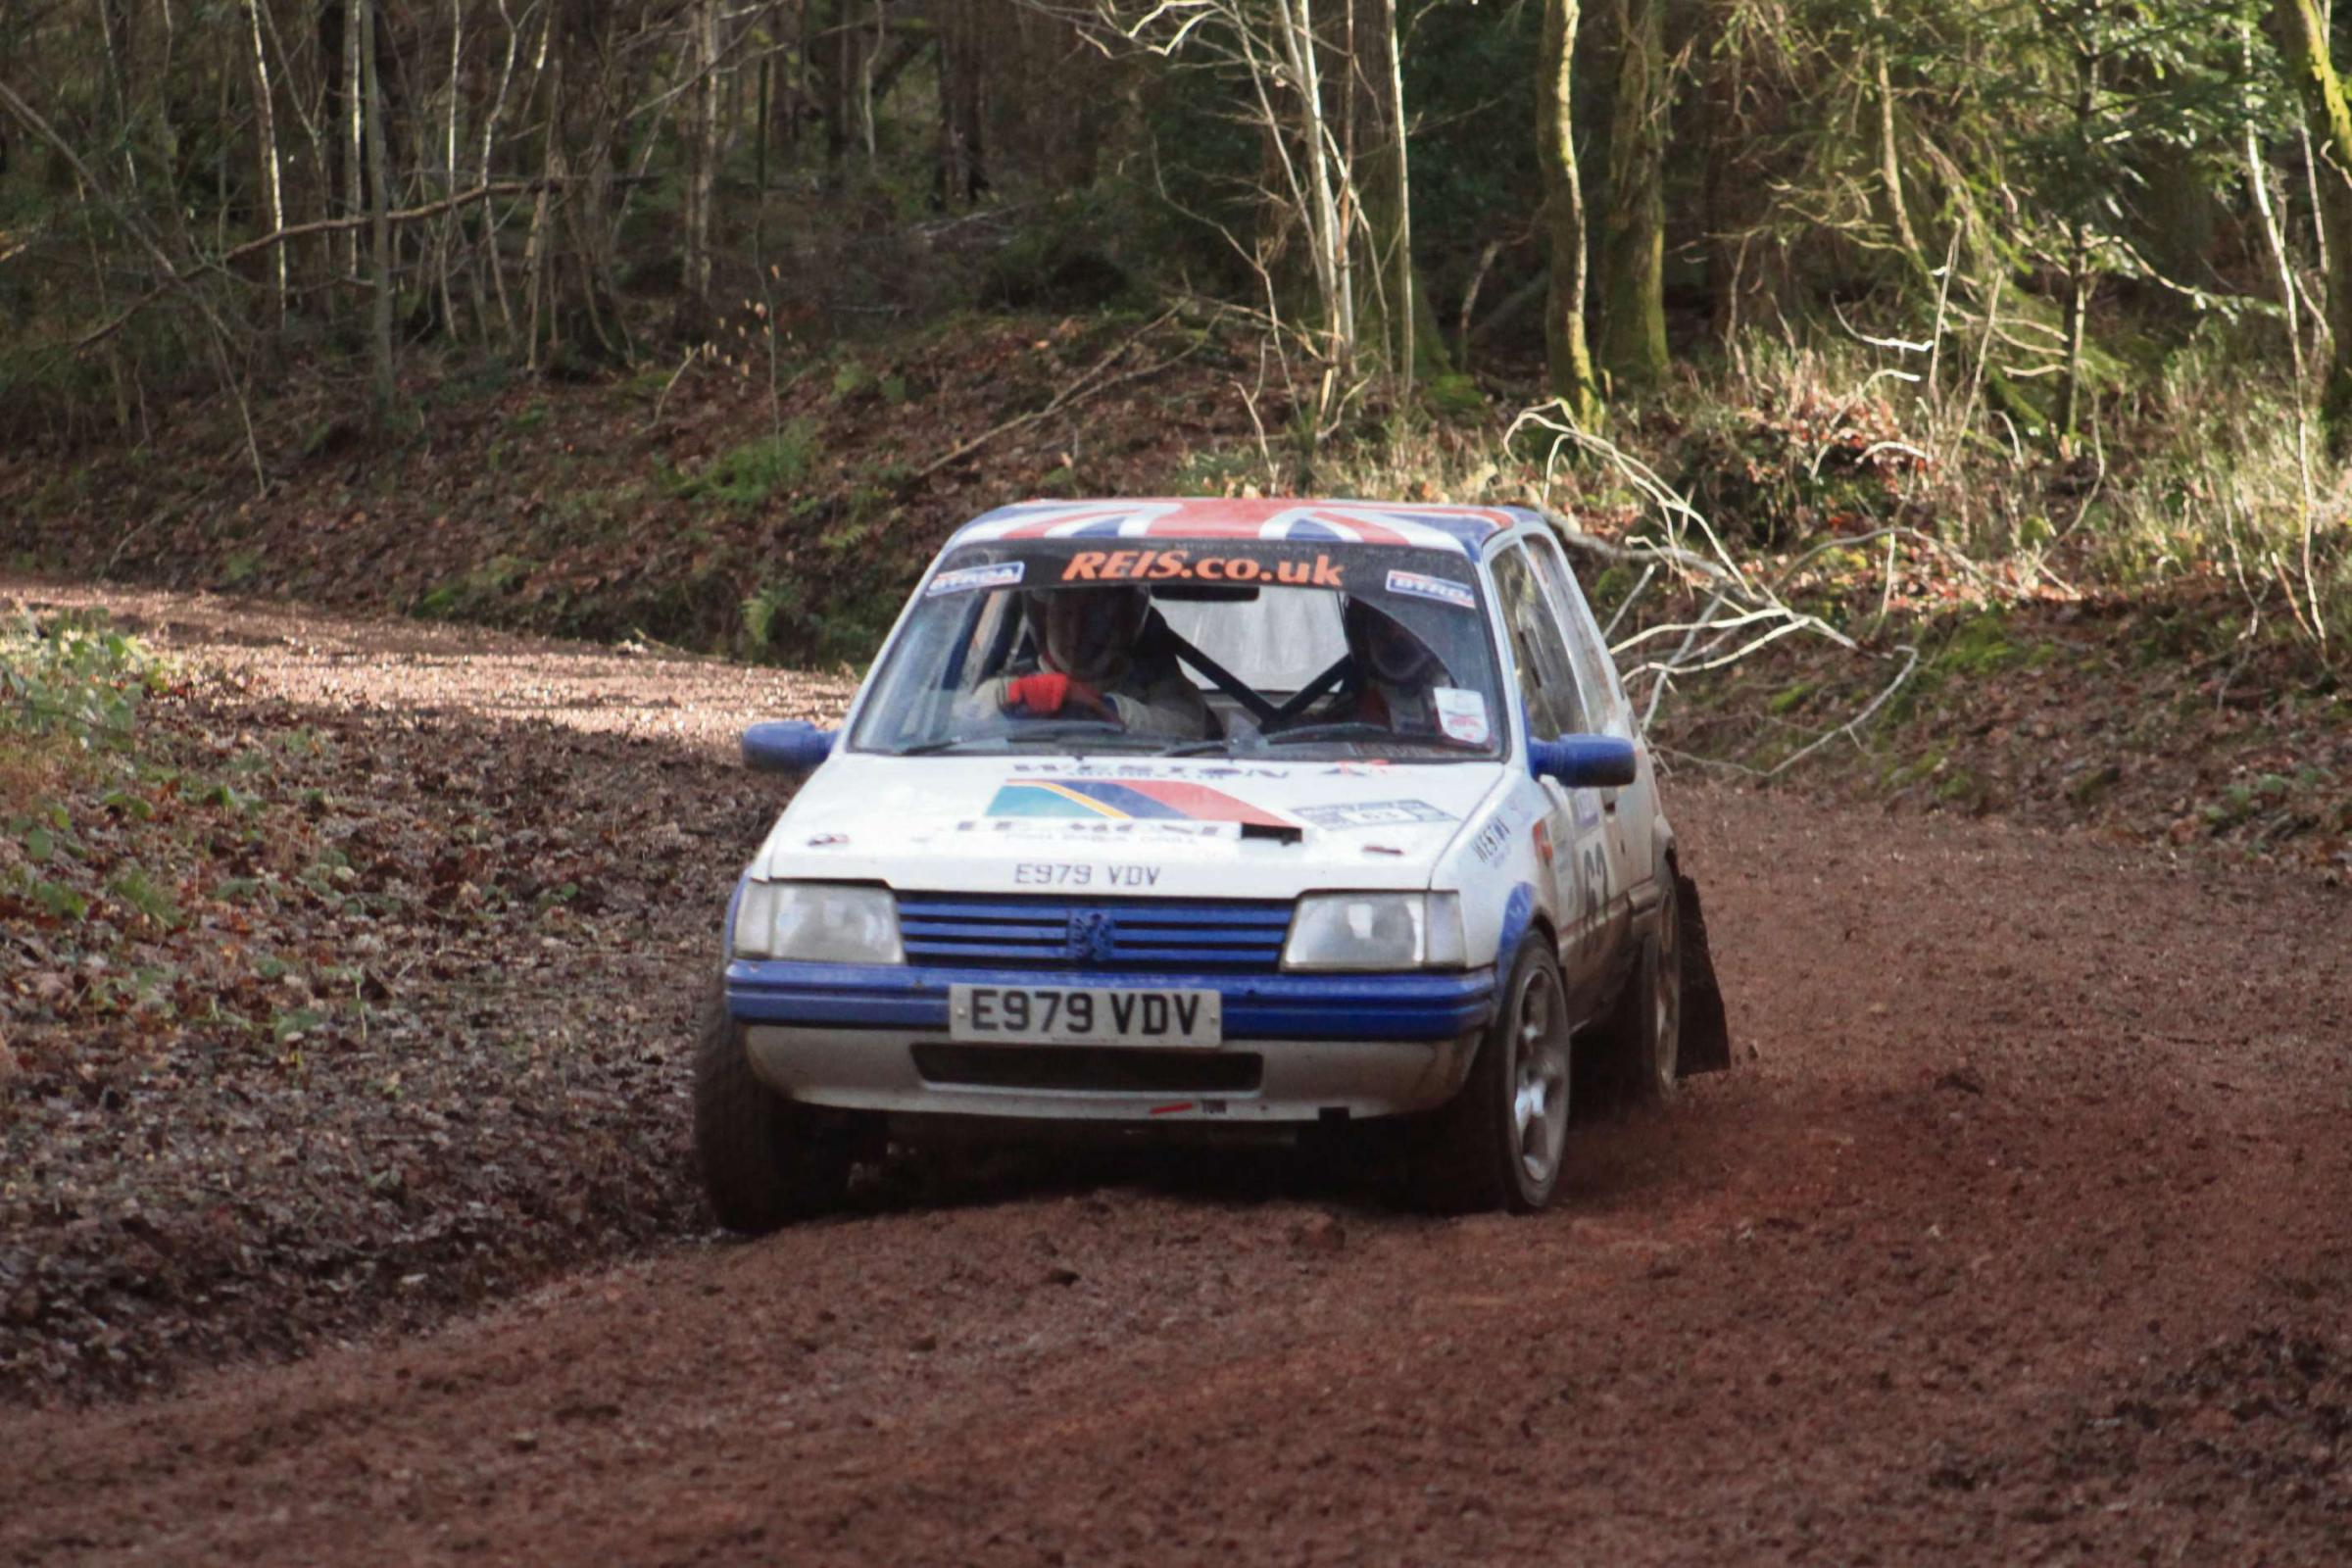 Steve Deeley and Alan Proudman in action on the Wyedean Rally.